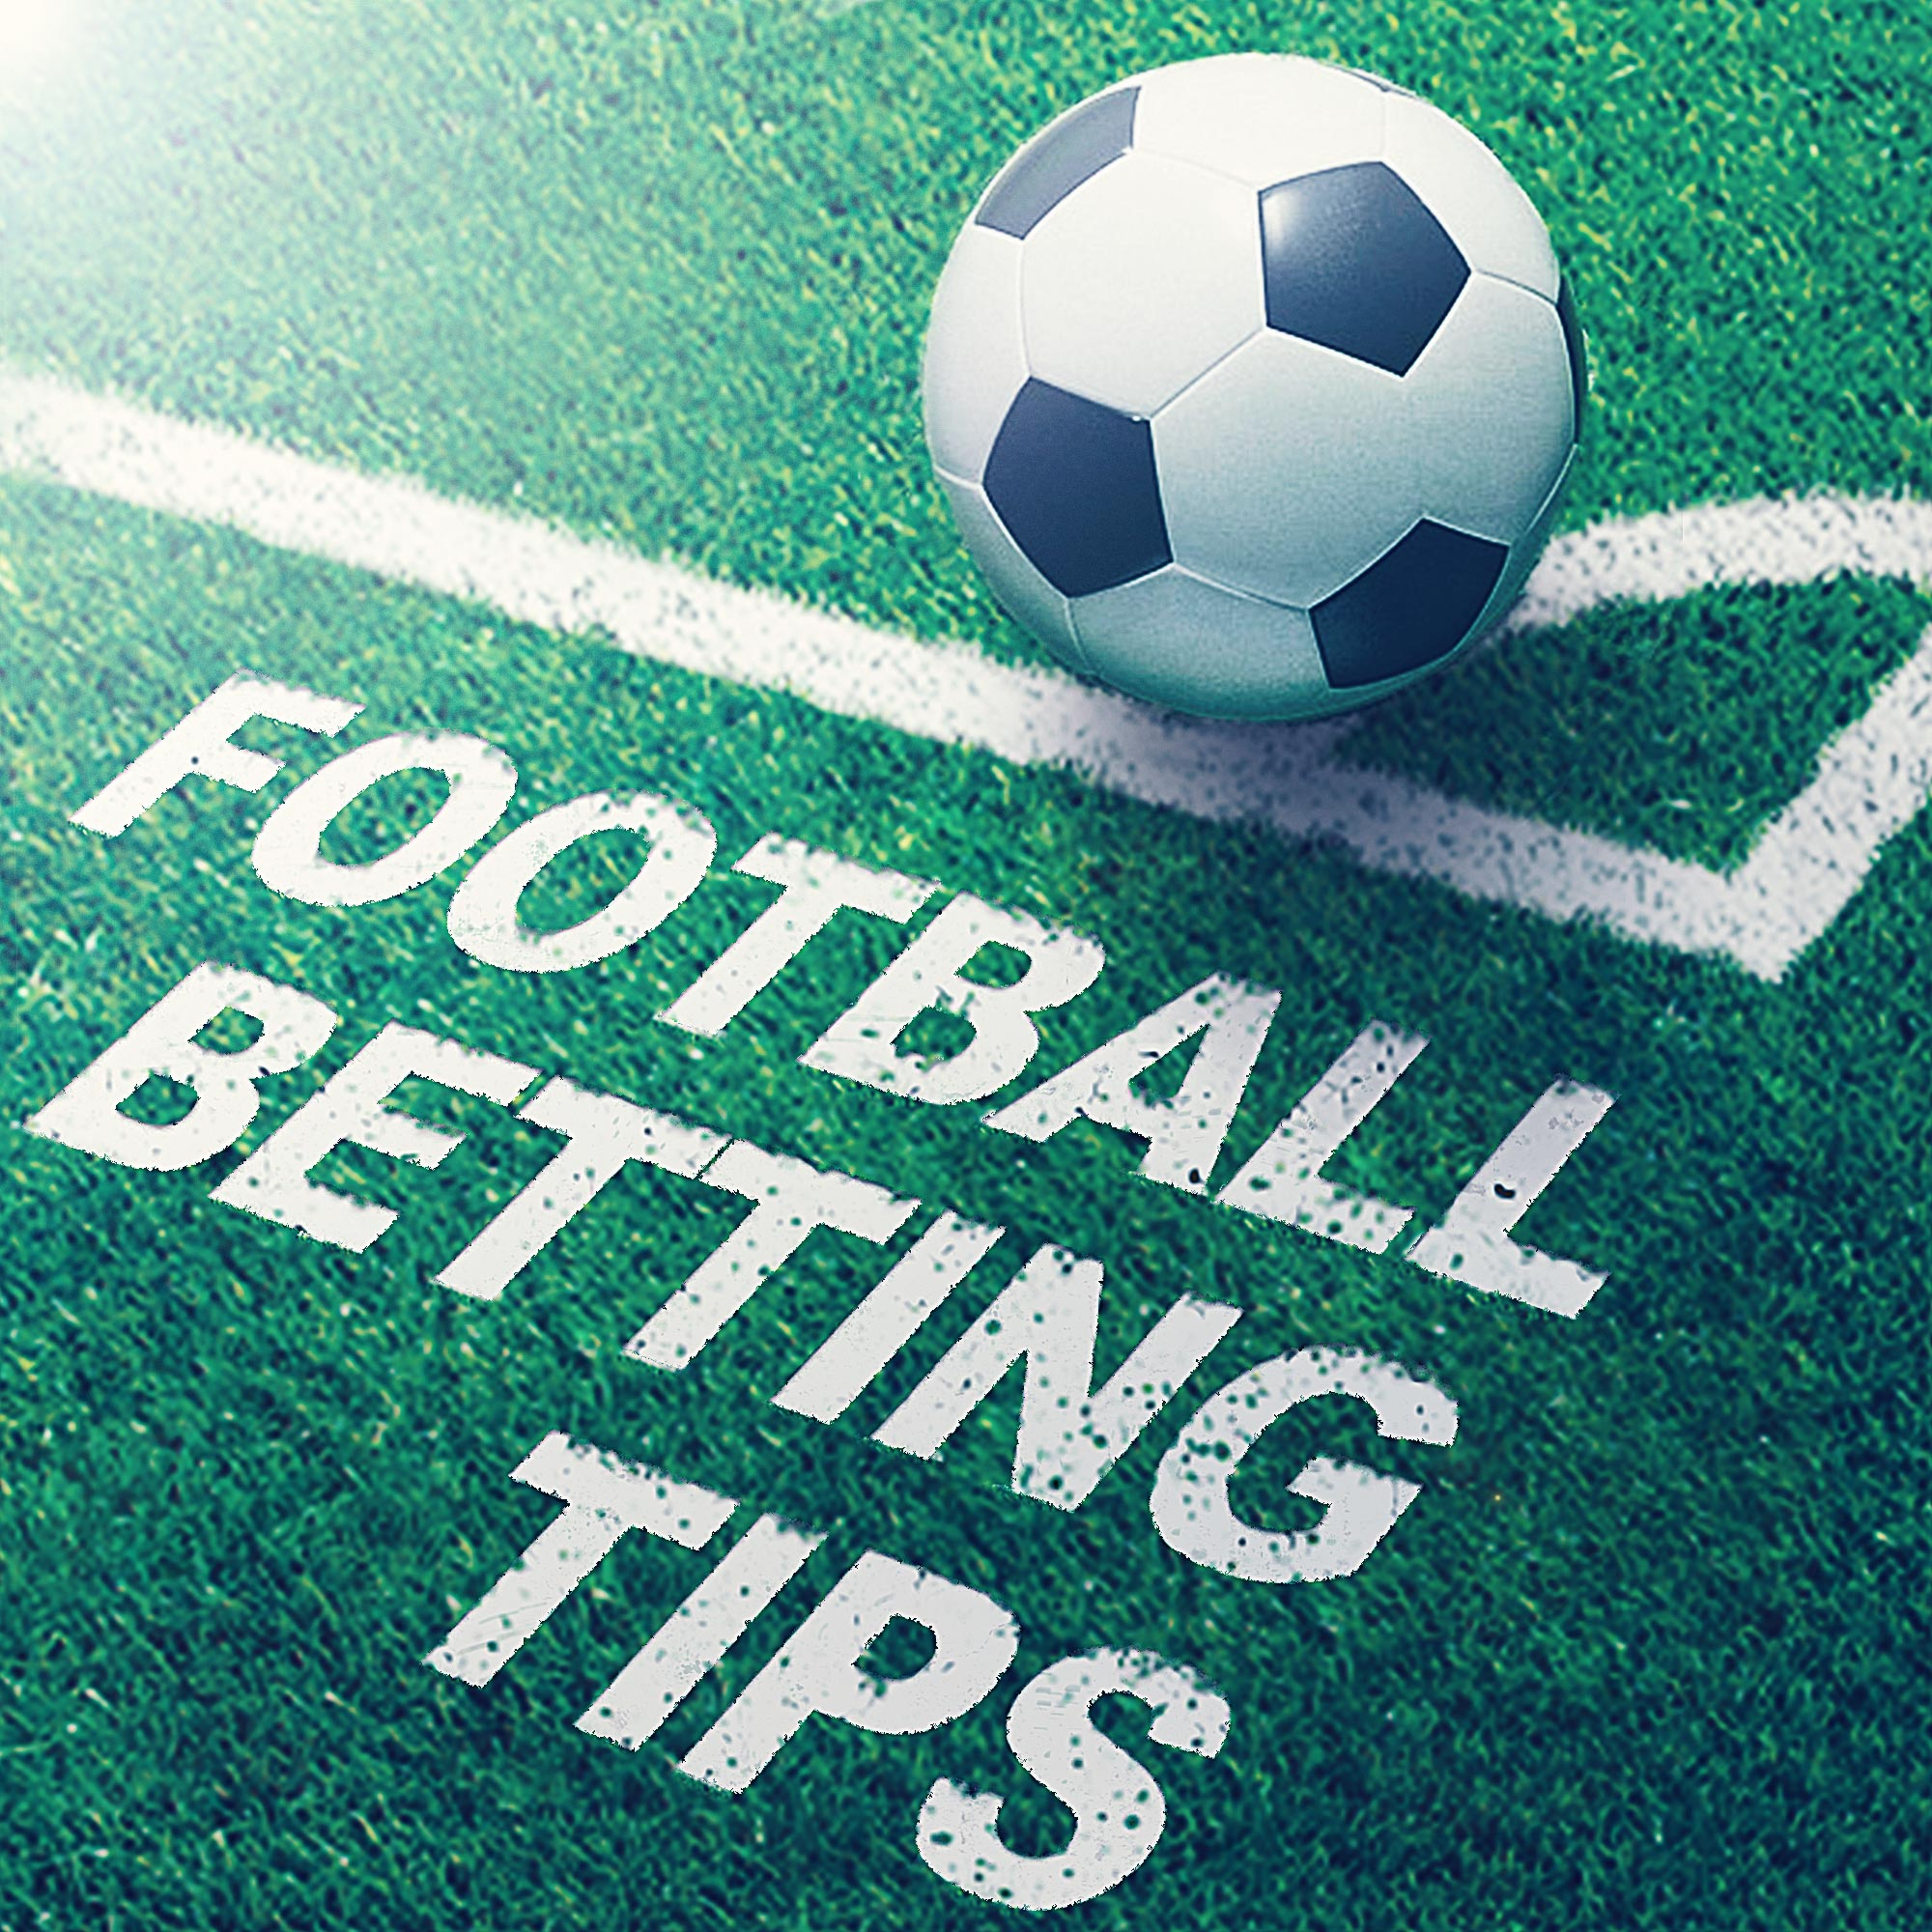 How to make money from this weekend's Premier League Fixtures